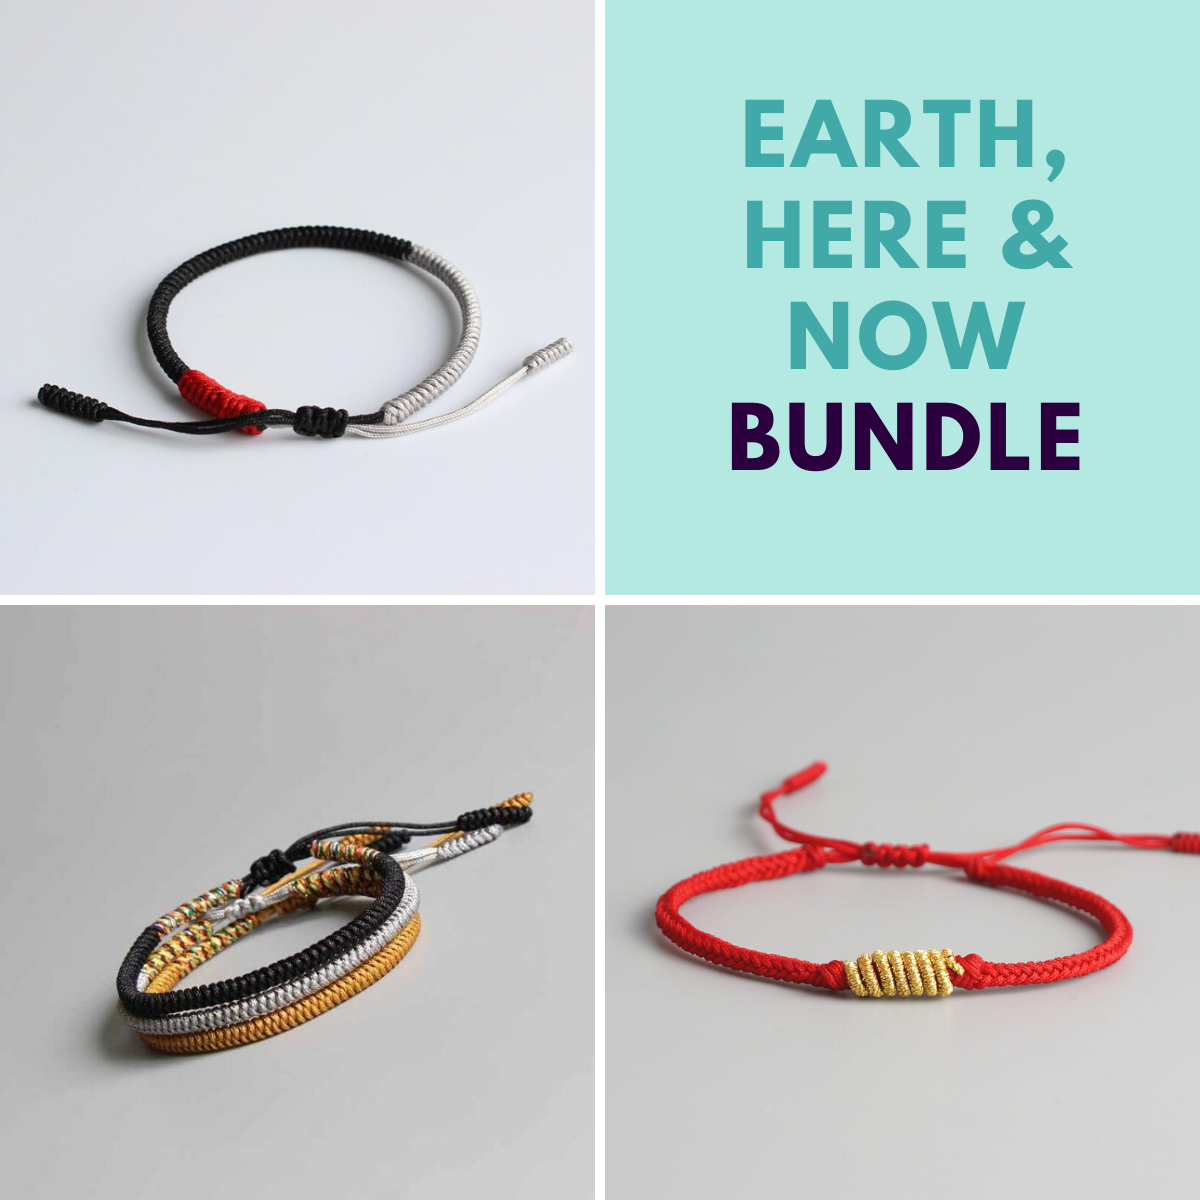 Earth, Here & Now Bundle